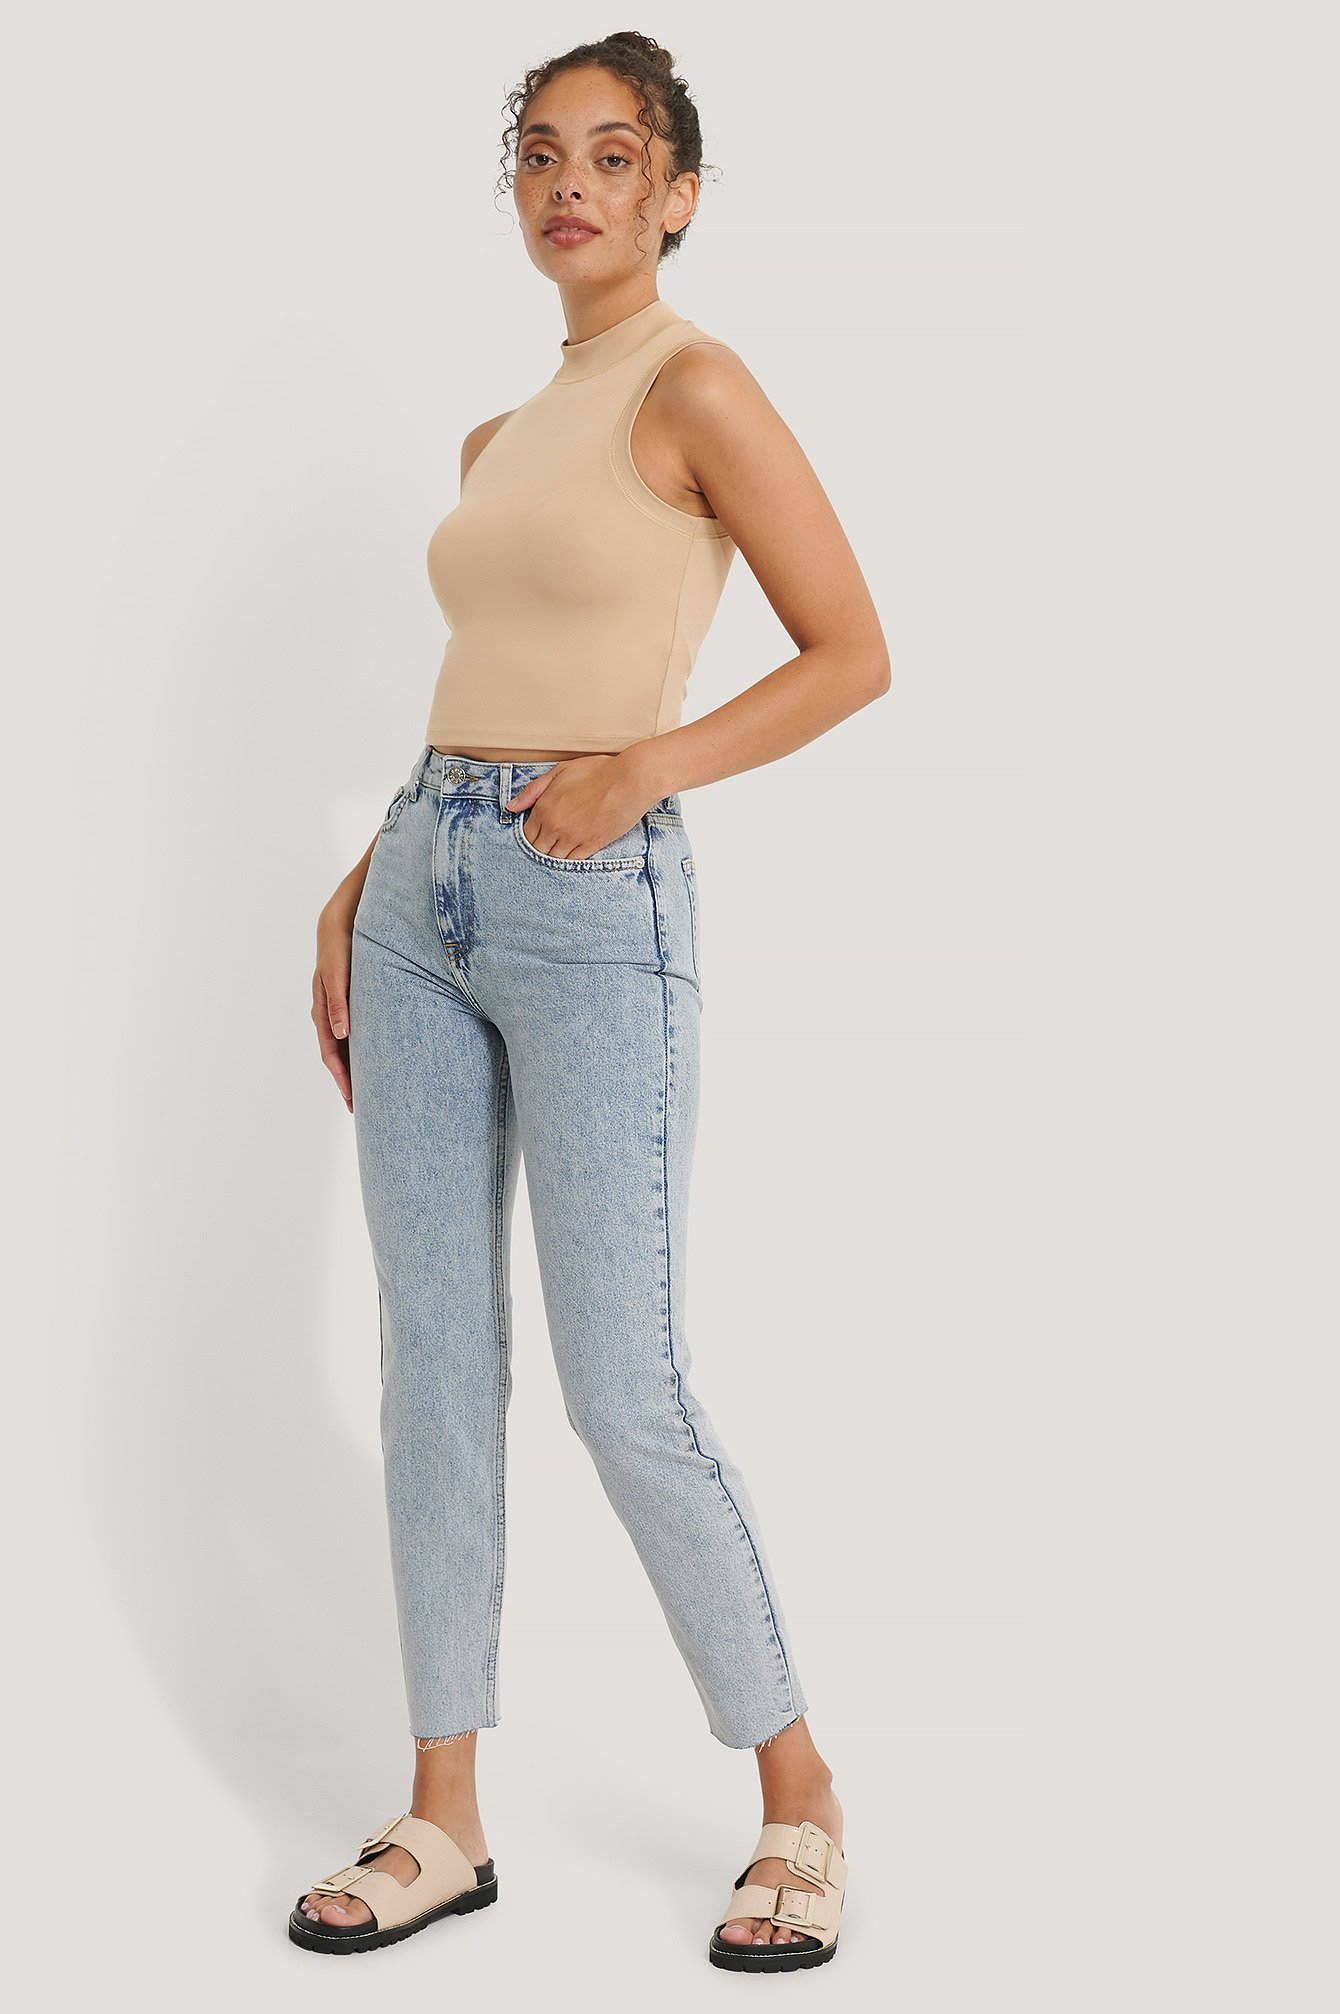 Light Blue Organisch Schmale Stone-Washed-Jeans Mit Hoher Taille